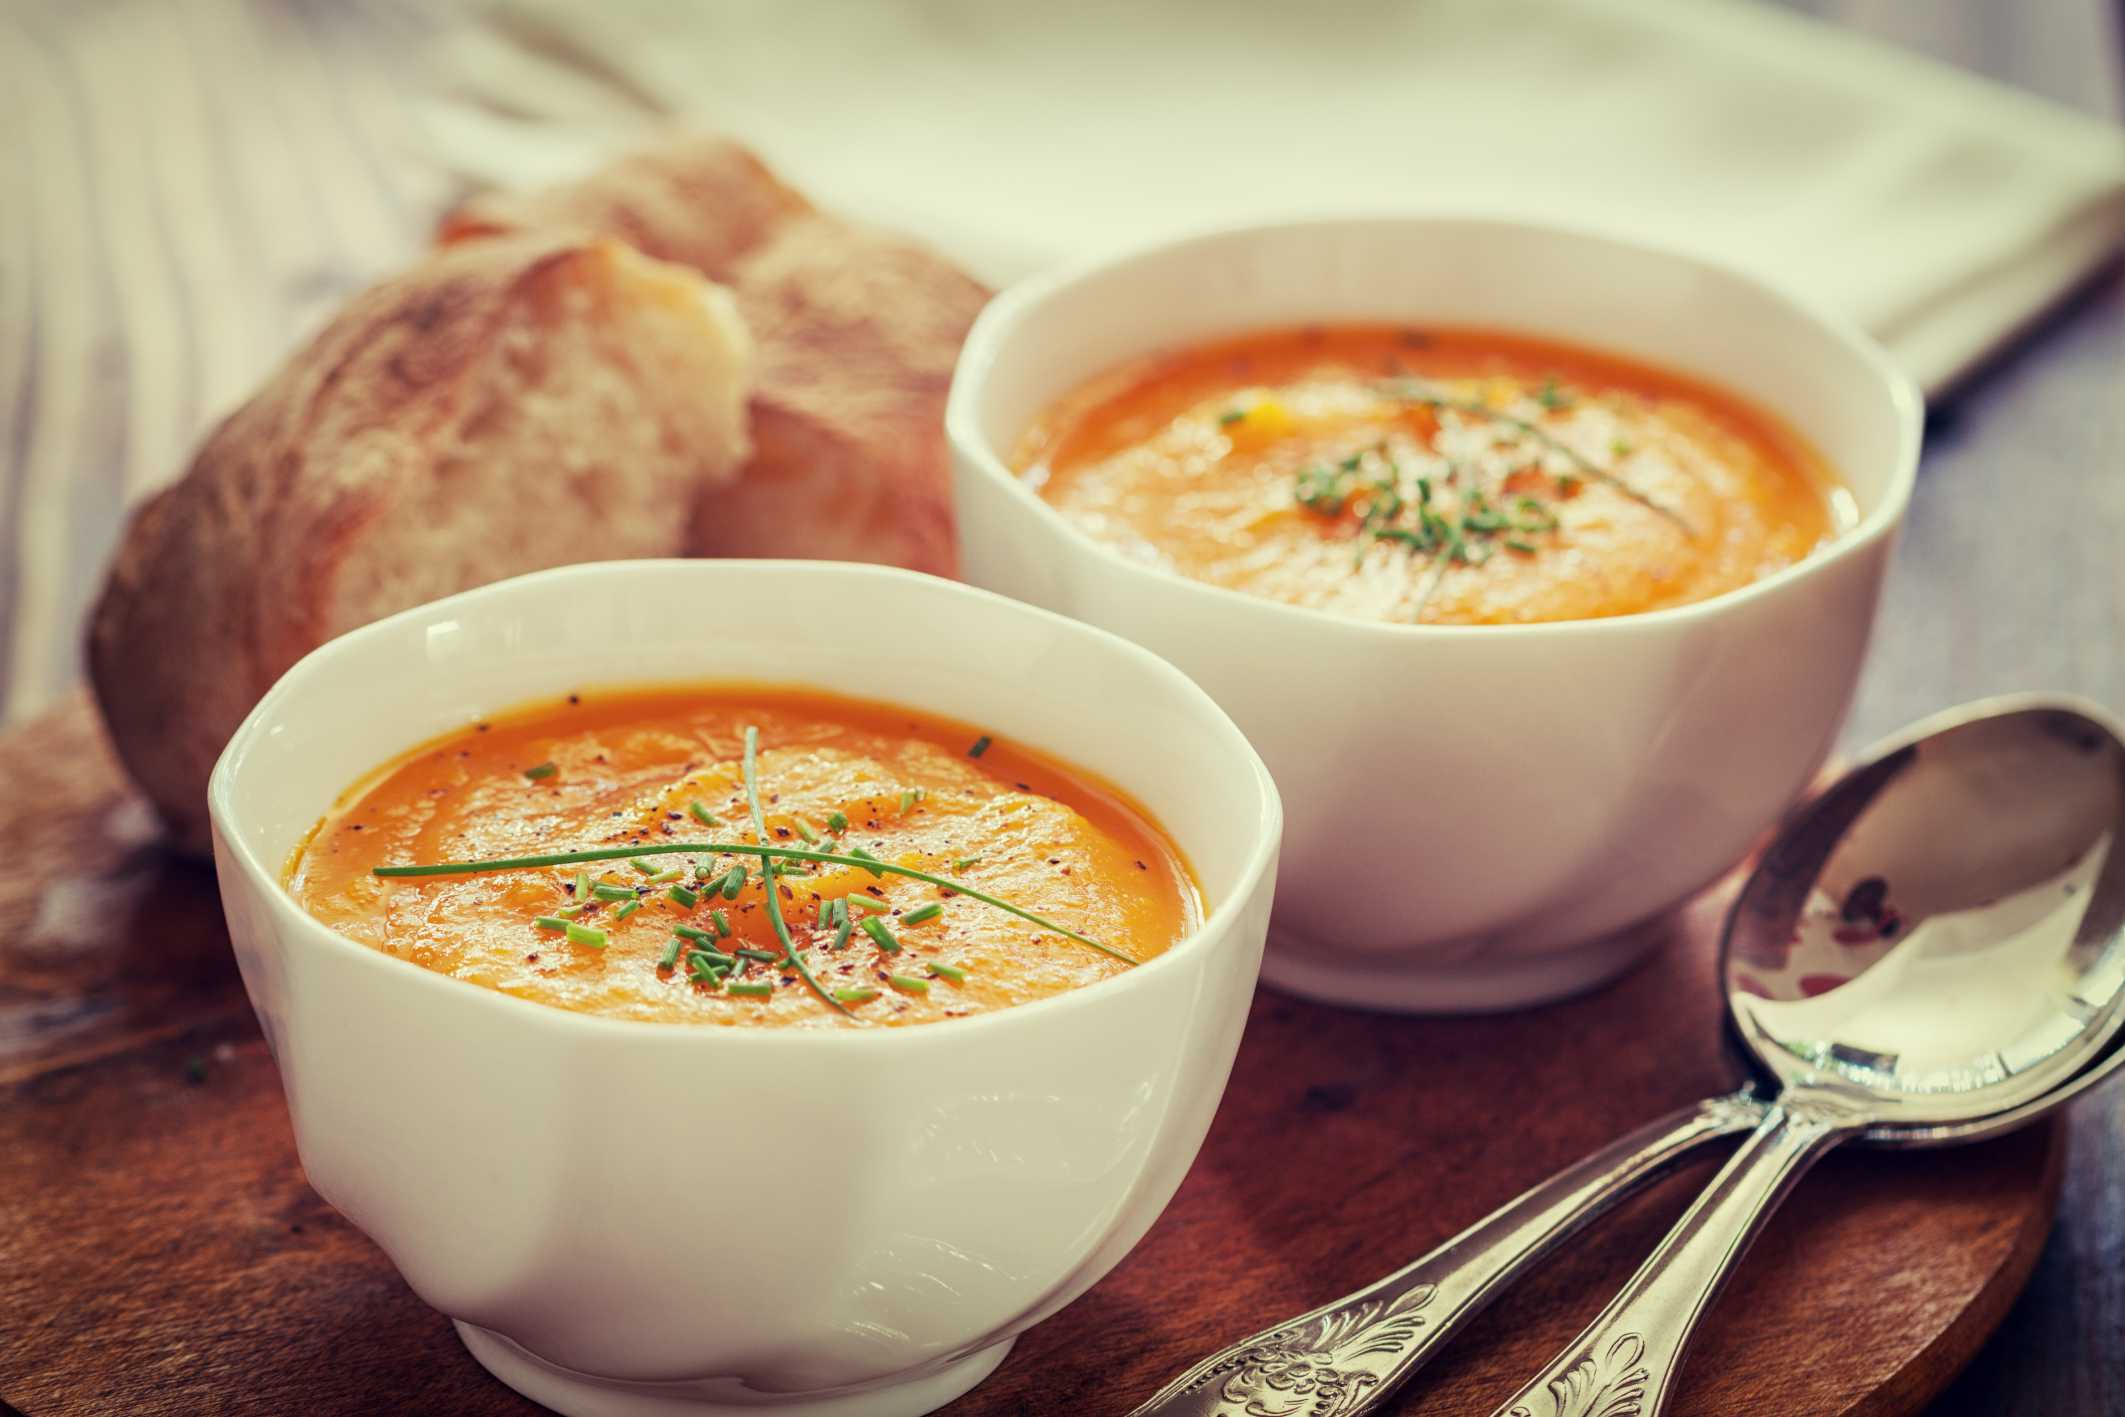 15 Spicy Soups and Stew Recipes To Keep You Warm